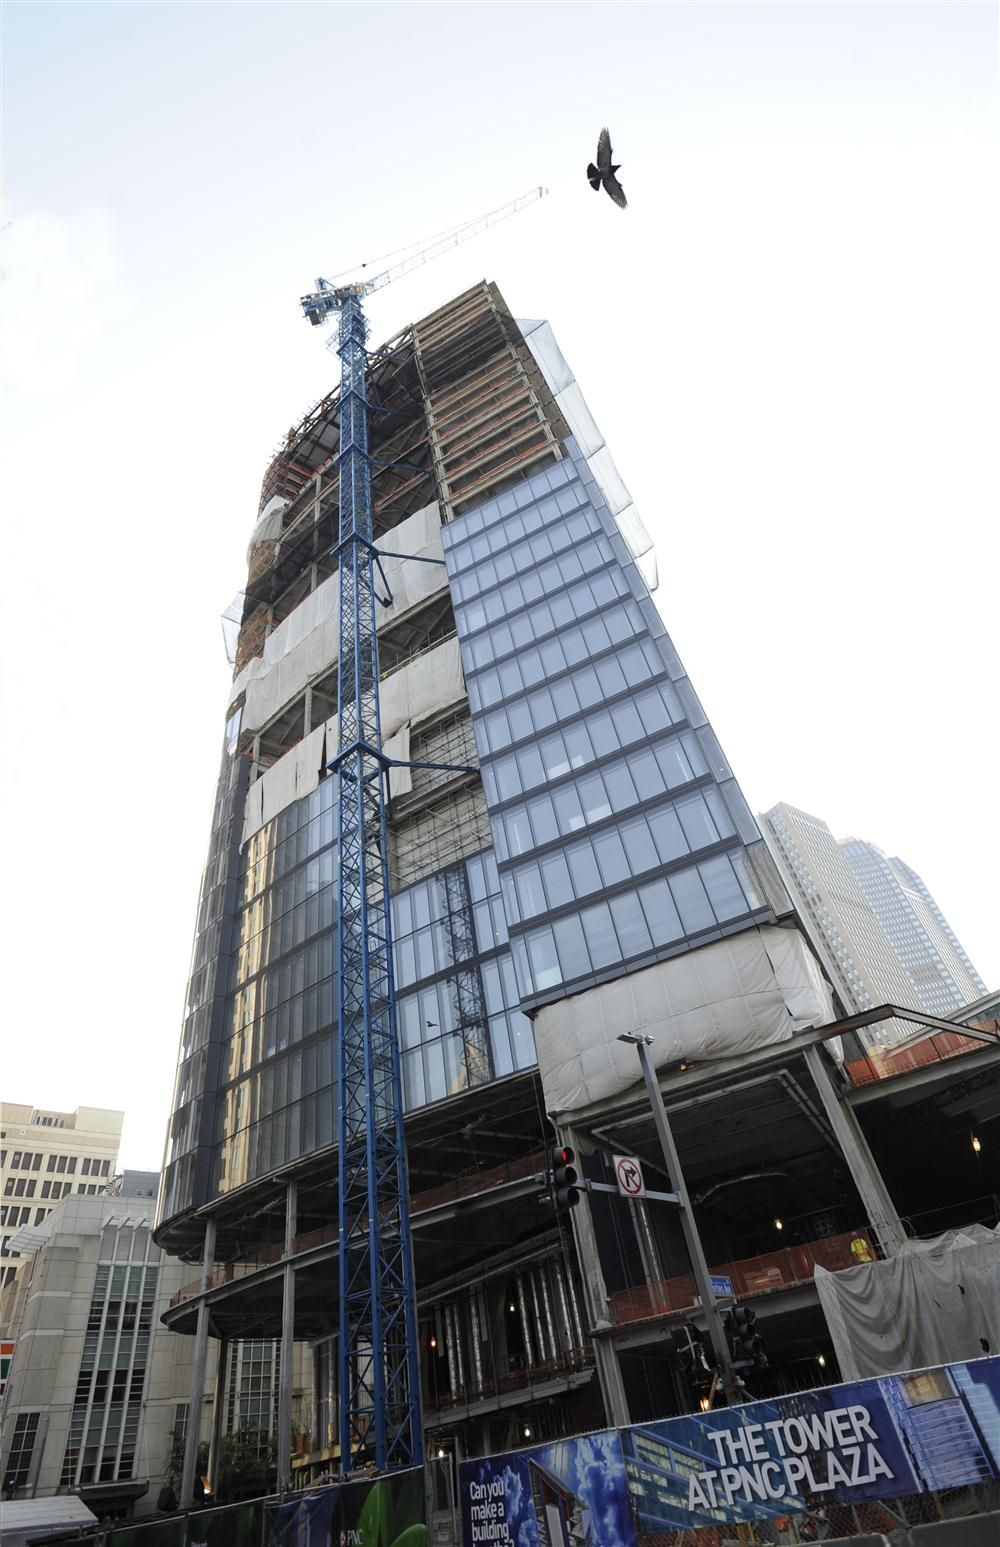 In downtown Pittsburgh, the greenest skyrise in the world, which towers 33 stories, is nearly complete.